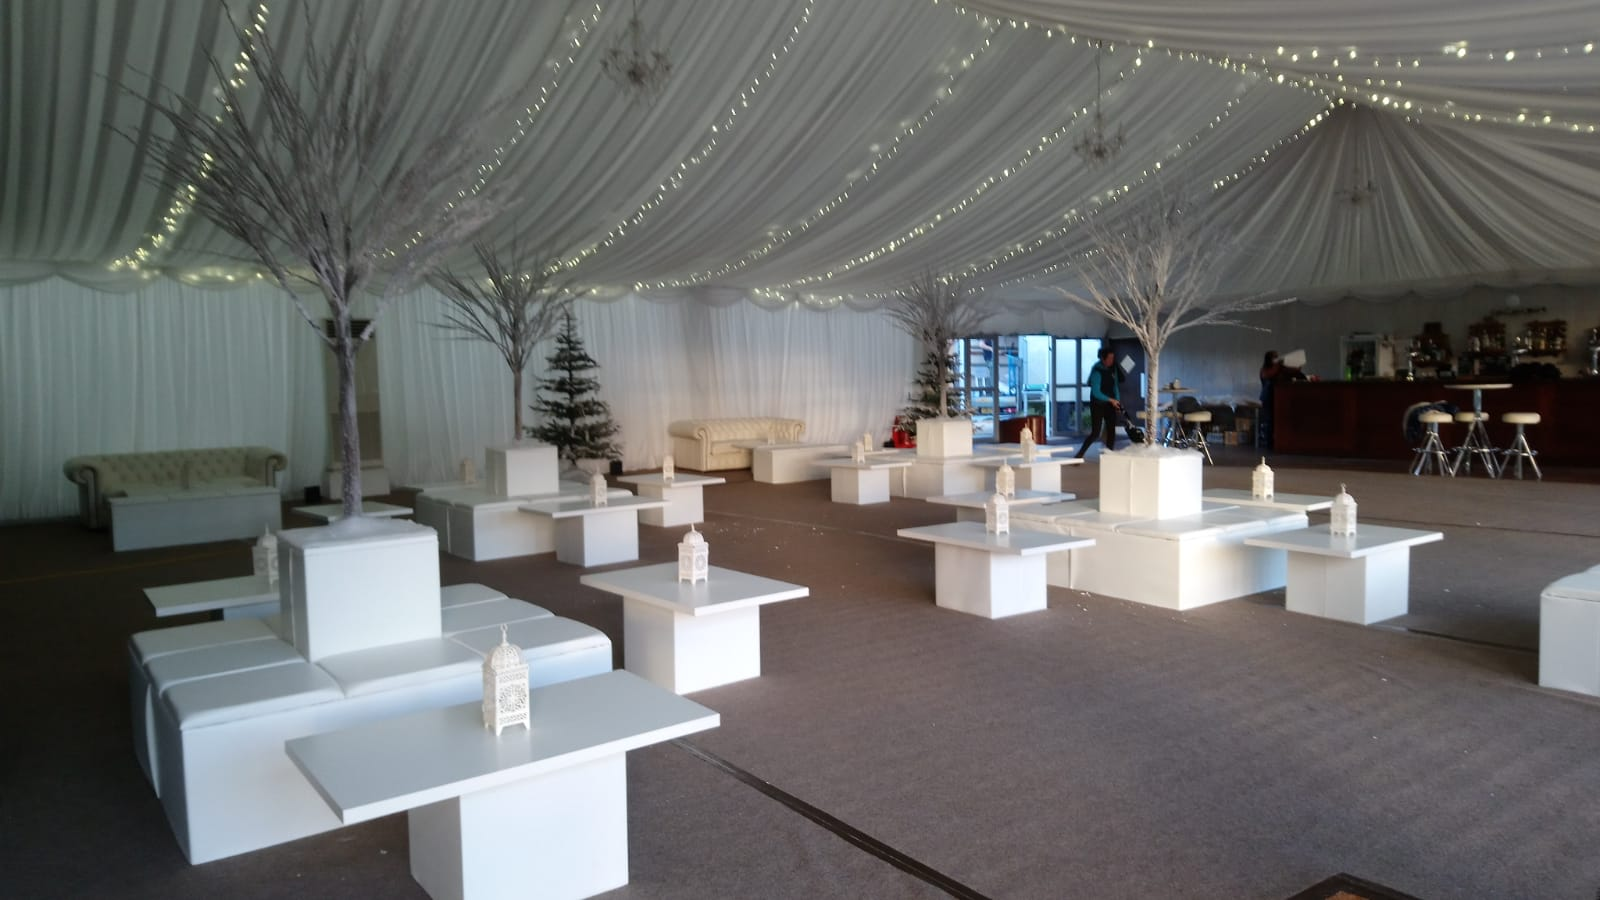 Grange Farm winter wedding decor hire with white furniture, fairy light canopy ceiling installation and frozen trees